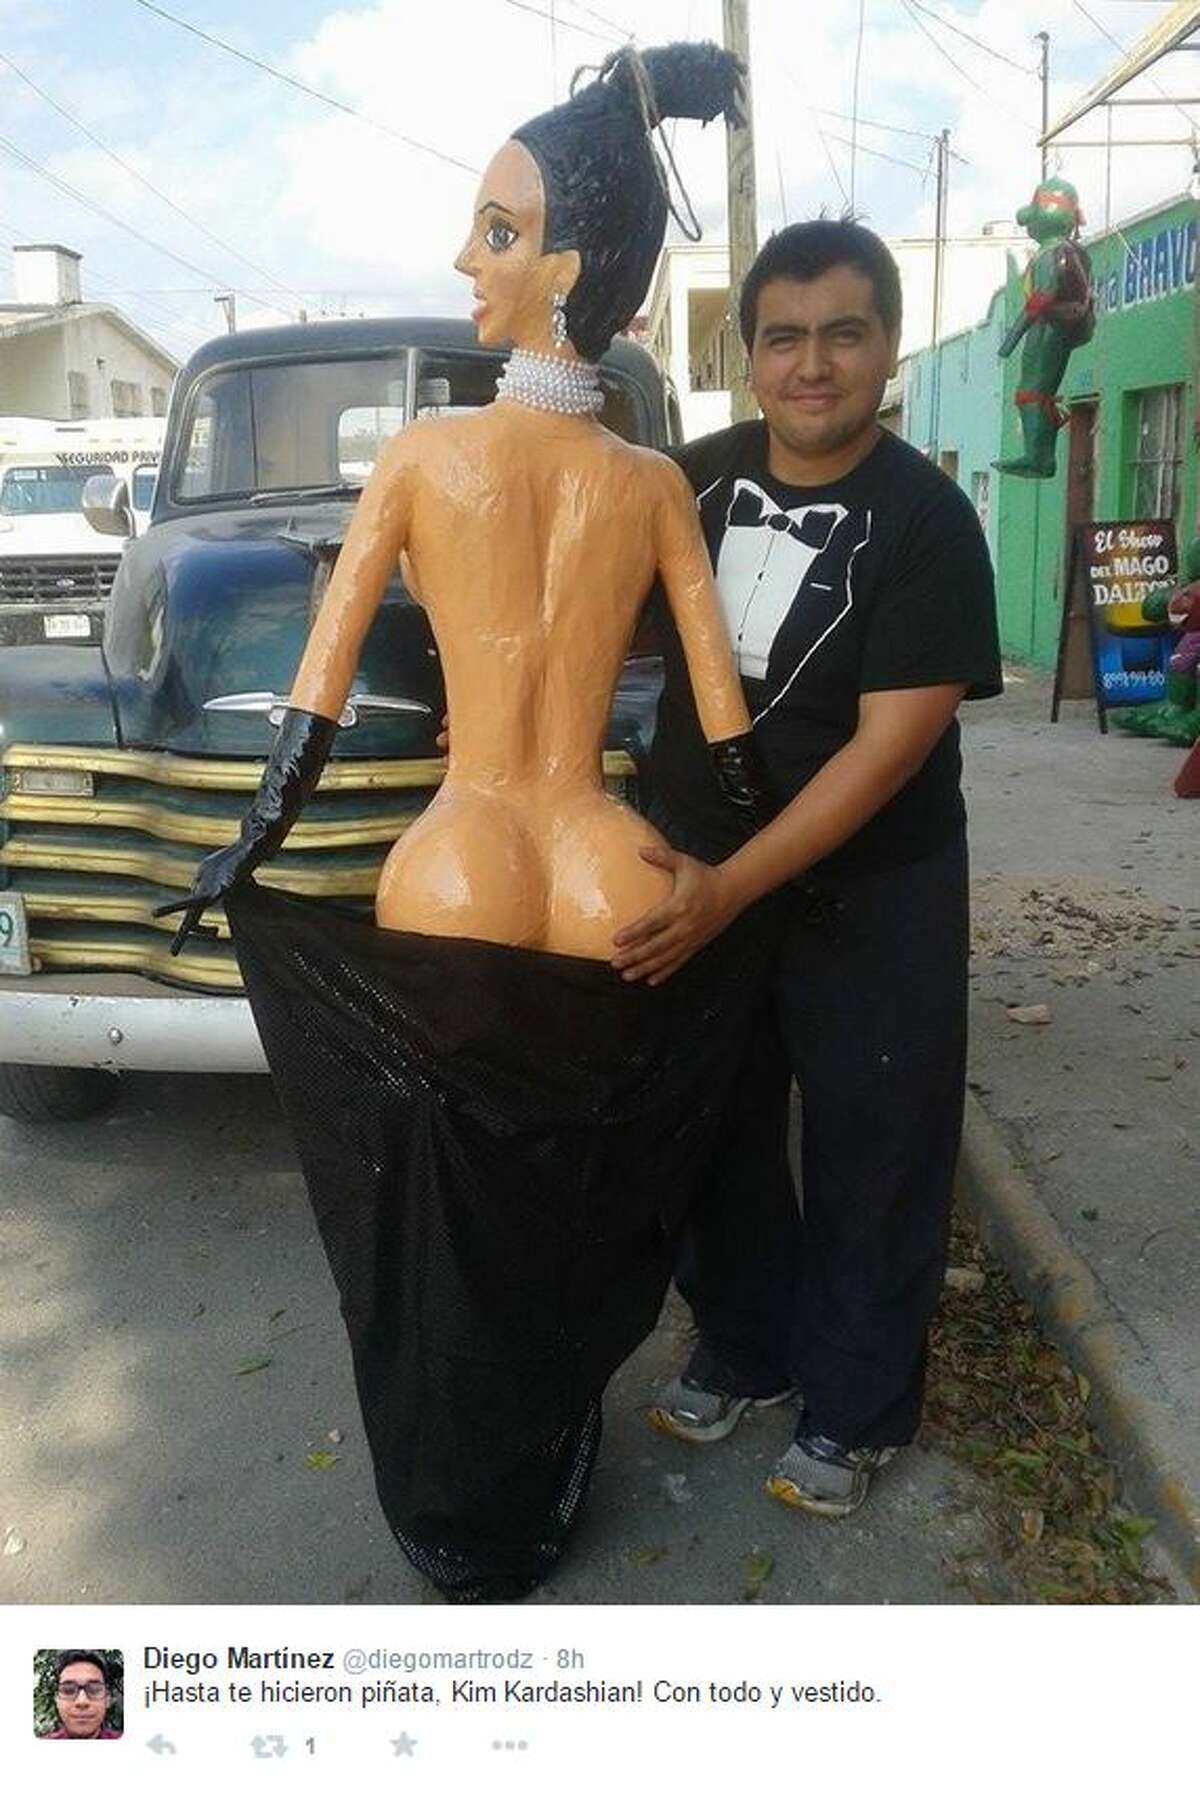 """She might not have broken the Internet, but you can break Kim Kardashian for candy if you hop over to Mexico. Piñateria Ramirez in Reynosa, Tamaulipas - right across the U.S.-Mexico border from Hidalgo - has made a piñata of Kardashian's infamous """"Break The Internet"""" pose from Paper magazine's November cover."""